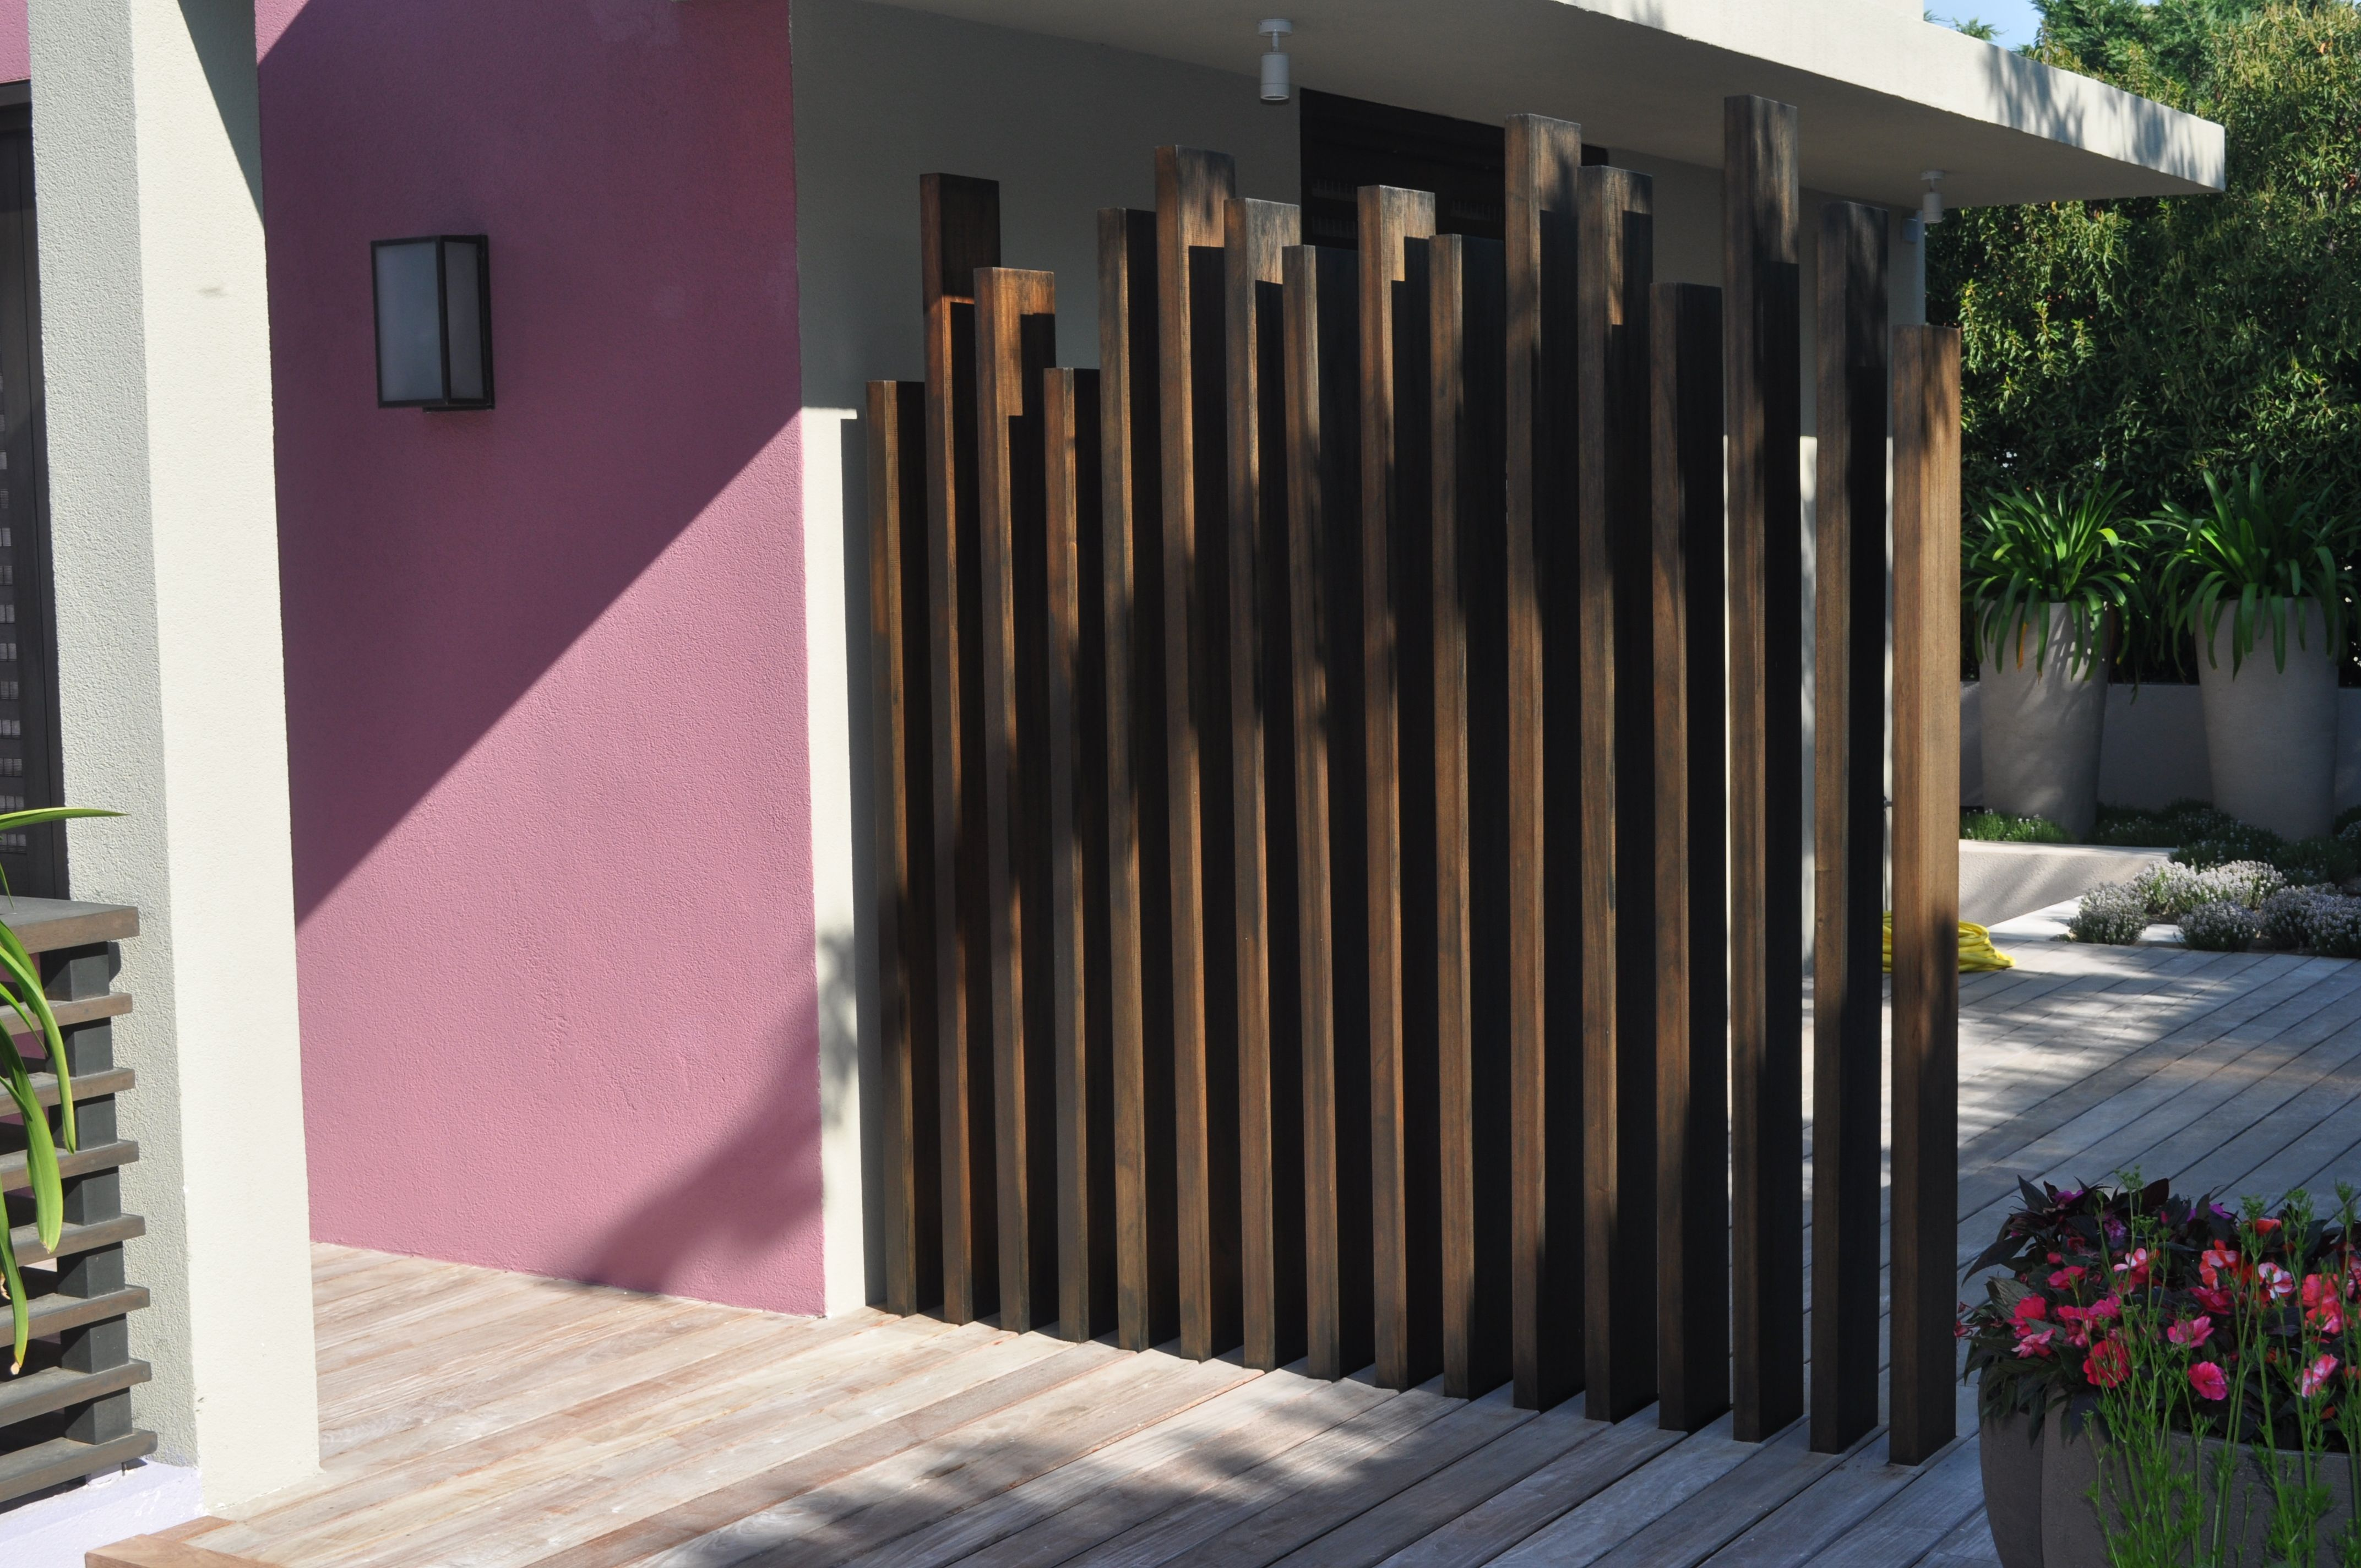 ideas for inside garage walls - Modern timber screen For the Home Pinterest